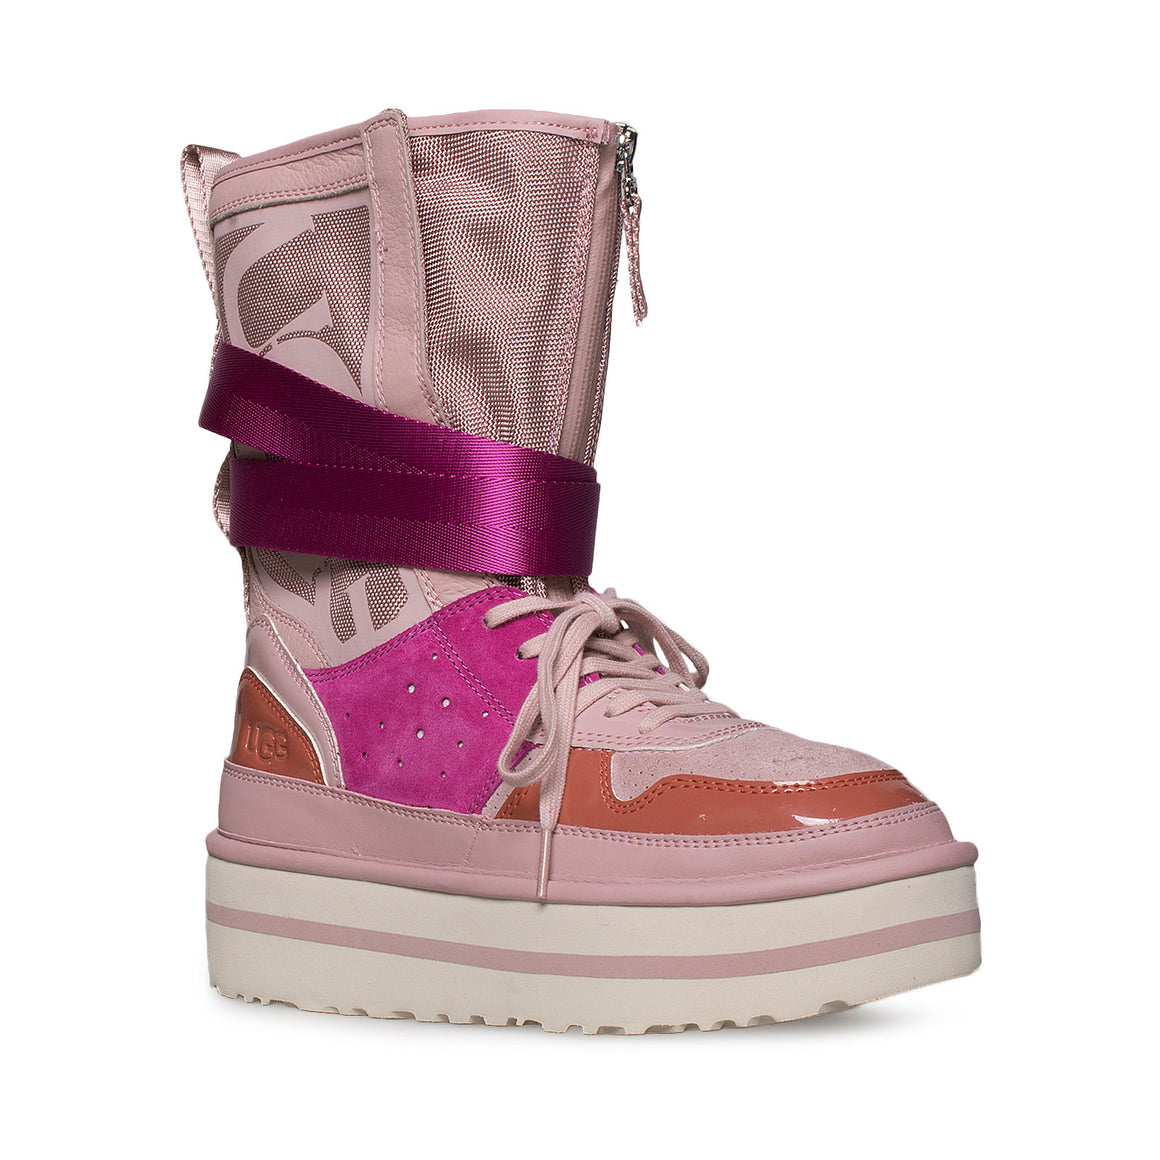 UGG Pop Punk High Top Pink Crystal Sneakers - Women's